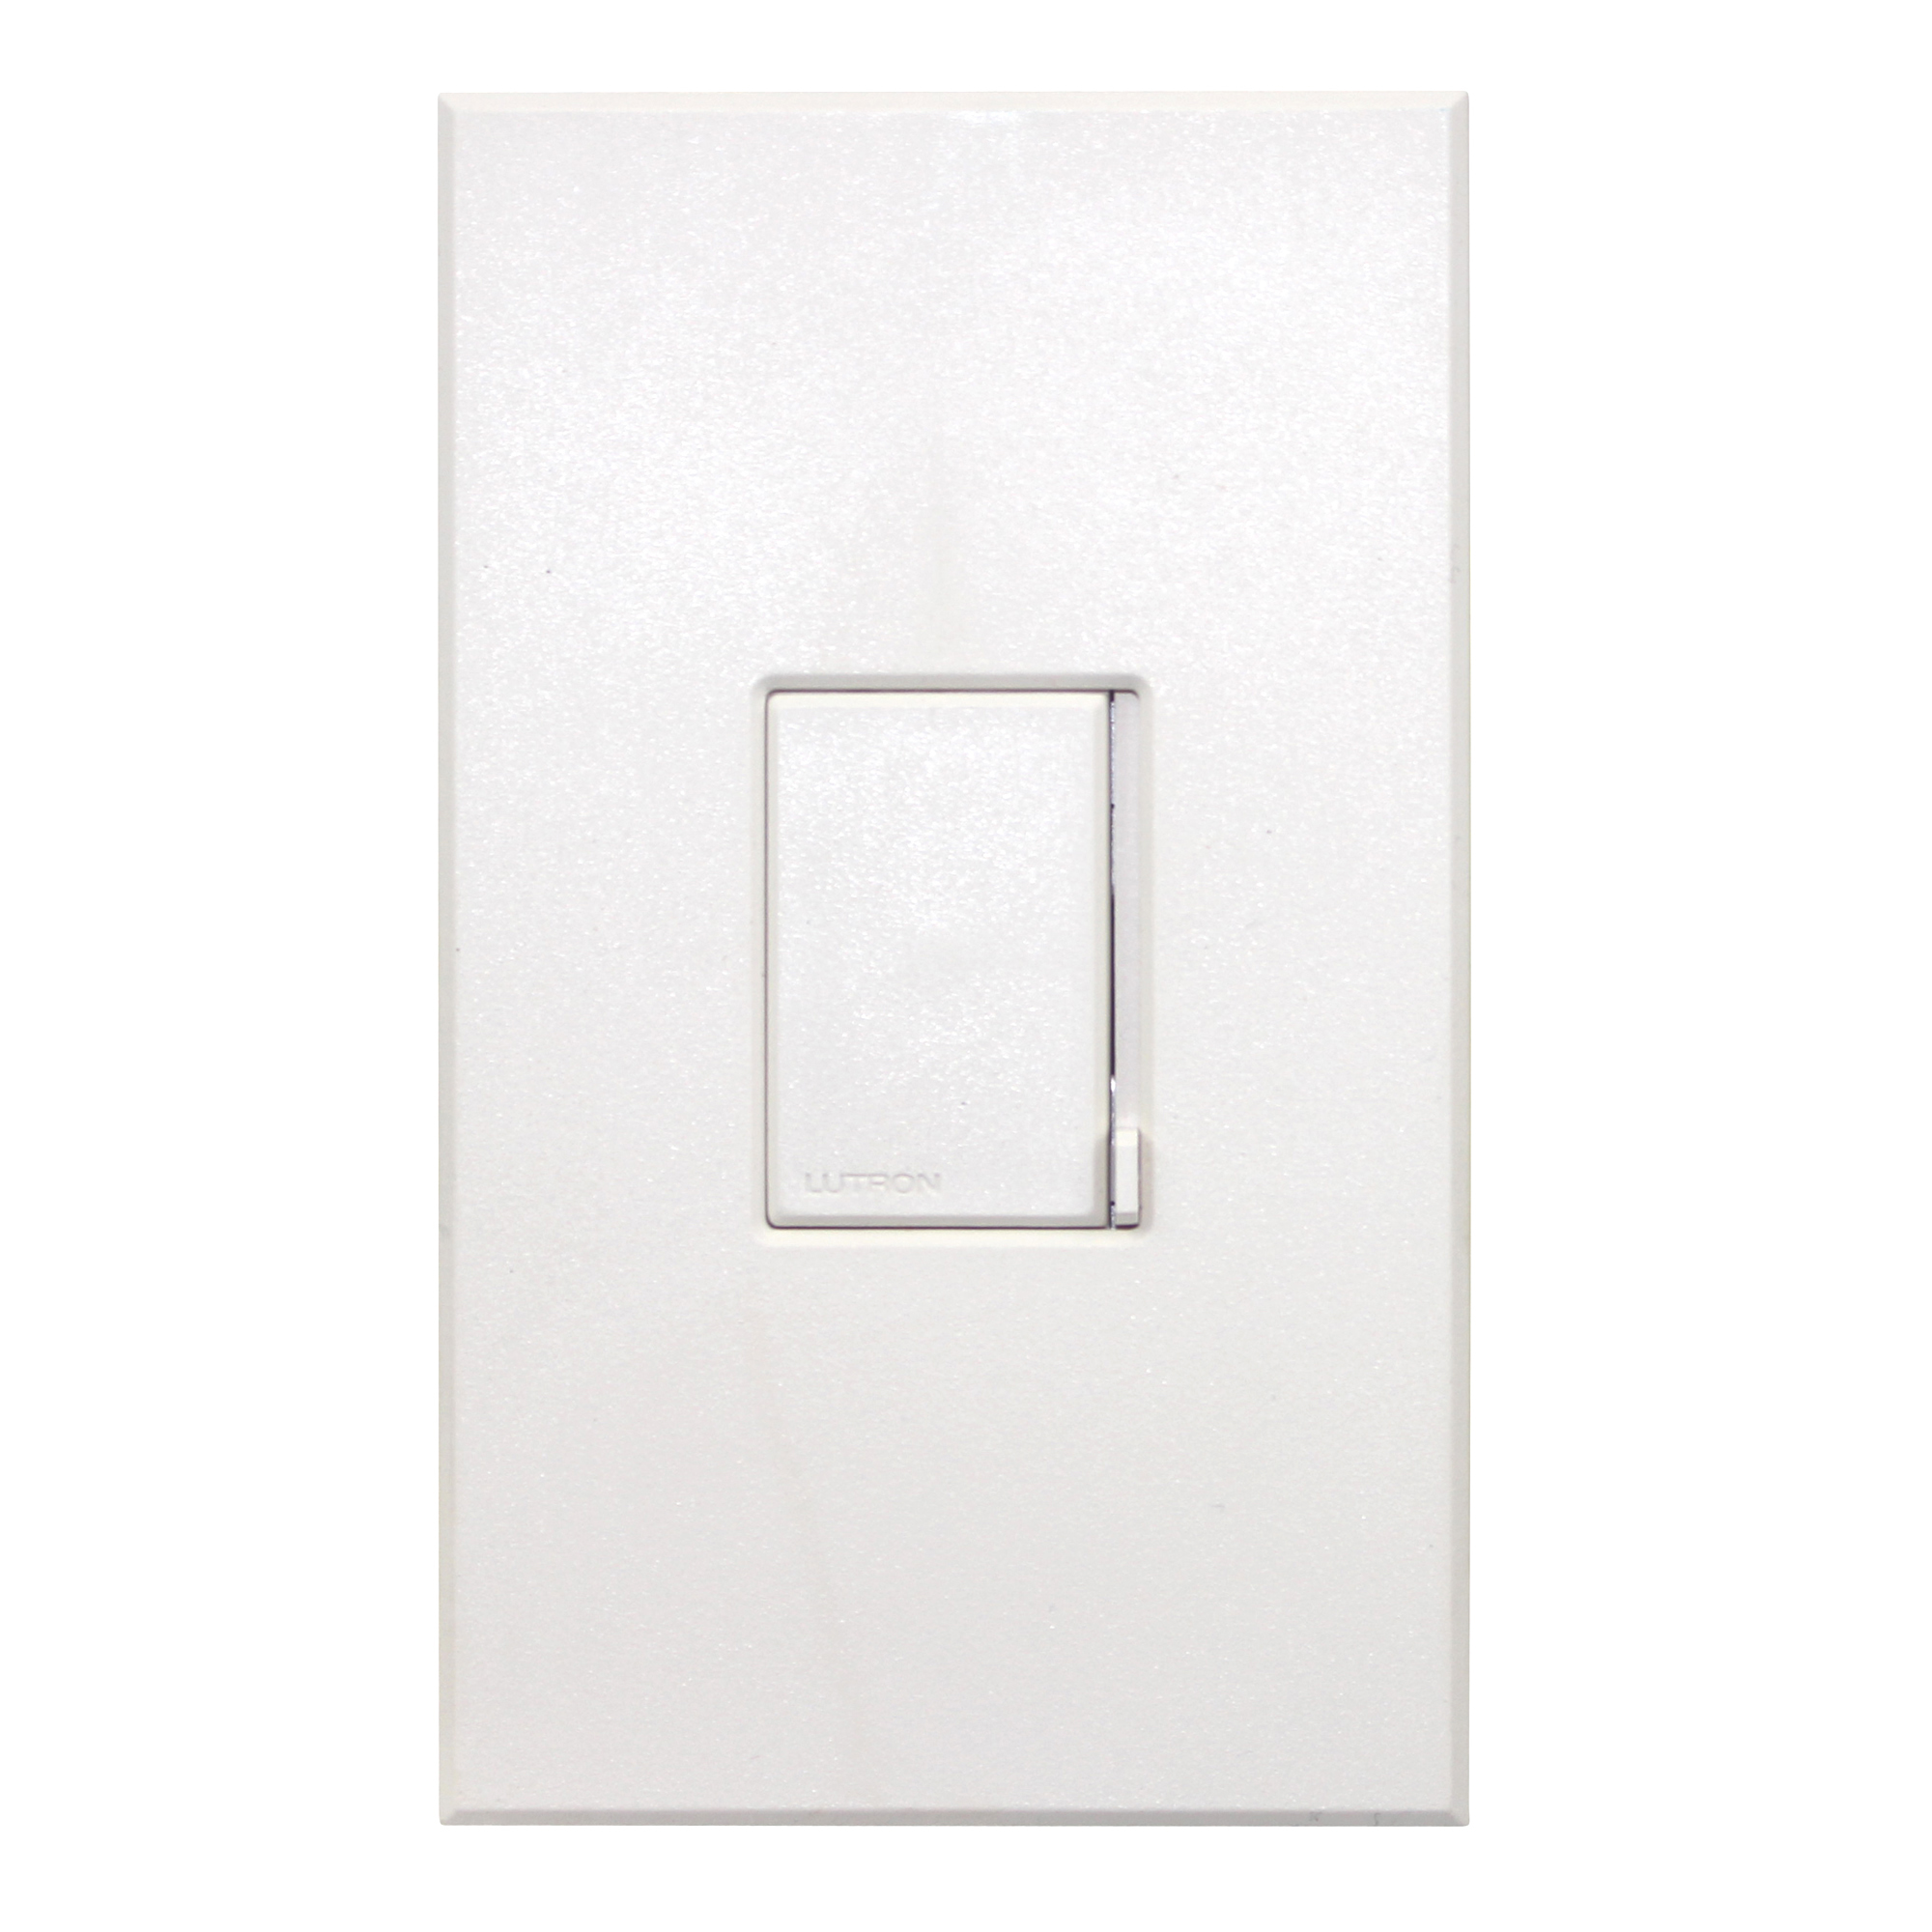 Lutron ntvlv 1000m nova t magnetic low voltage dimming for 120 volt magnetic door switch